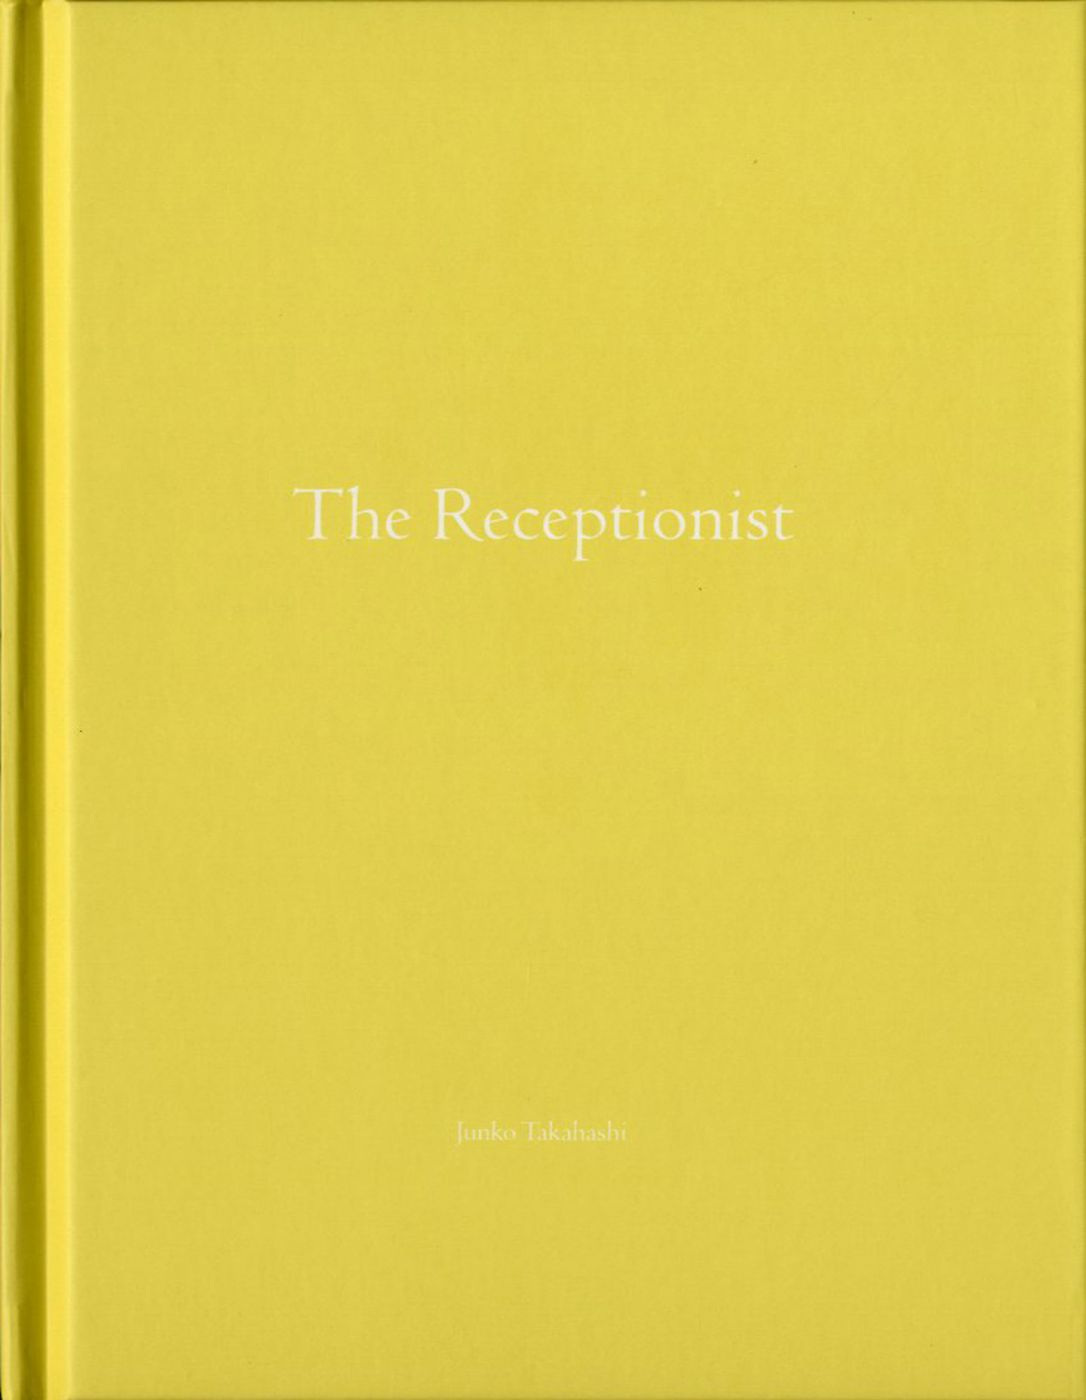 Junko Takahashi: The Receptionist (One Picture Book #38), Limited Edition